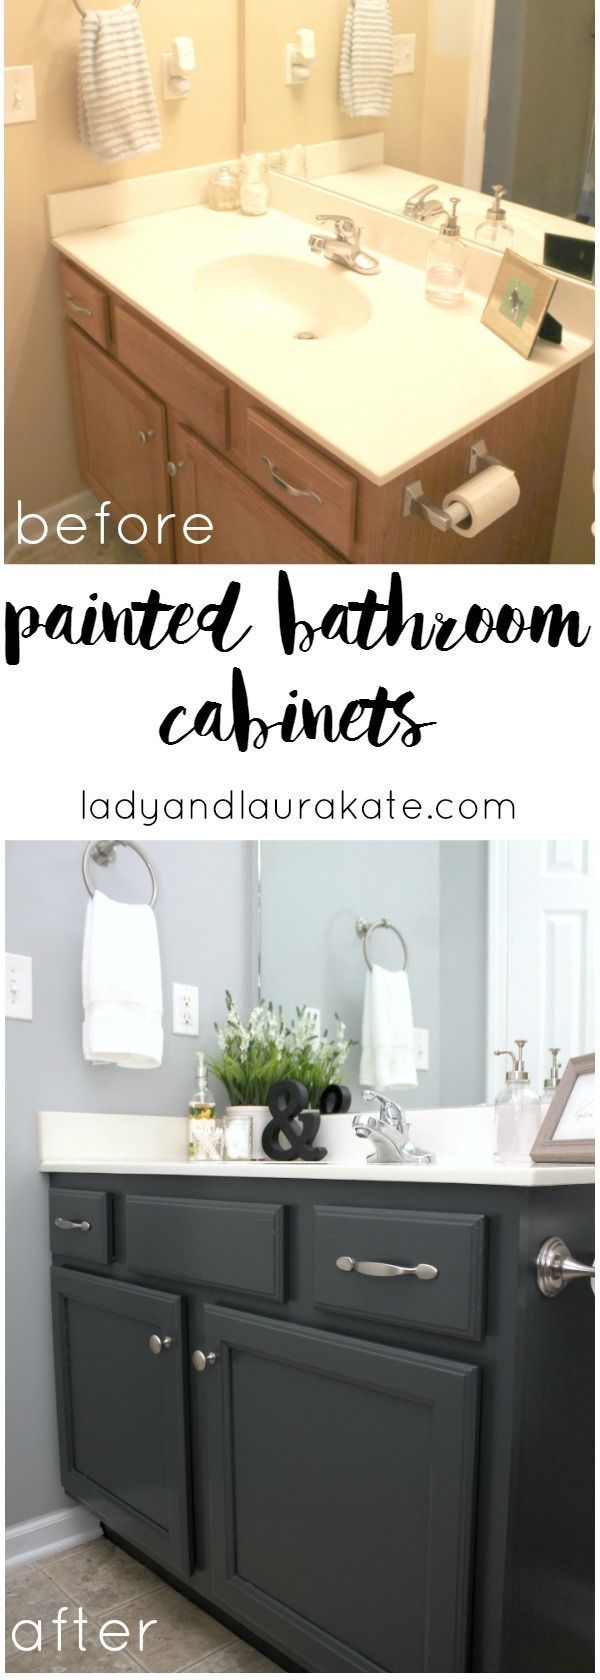 Painted Bathroom Cabinets